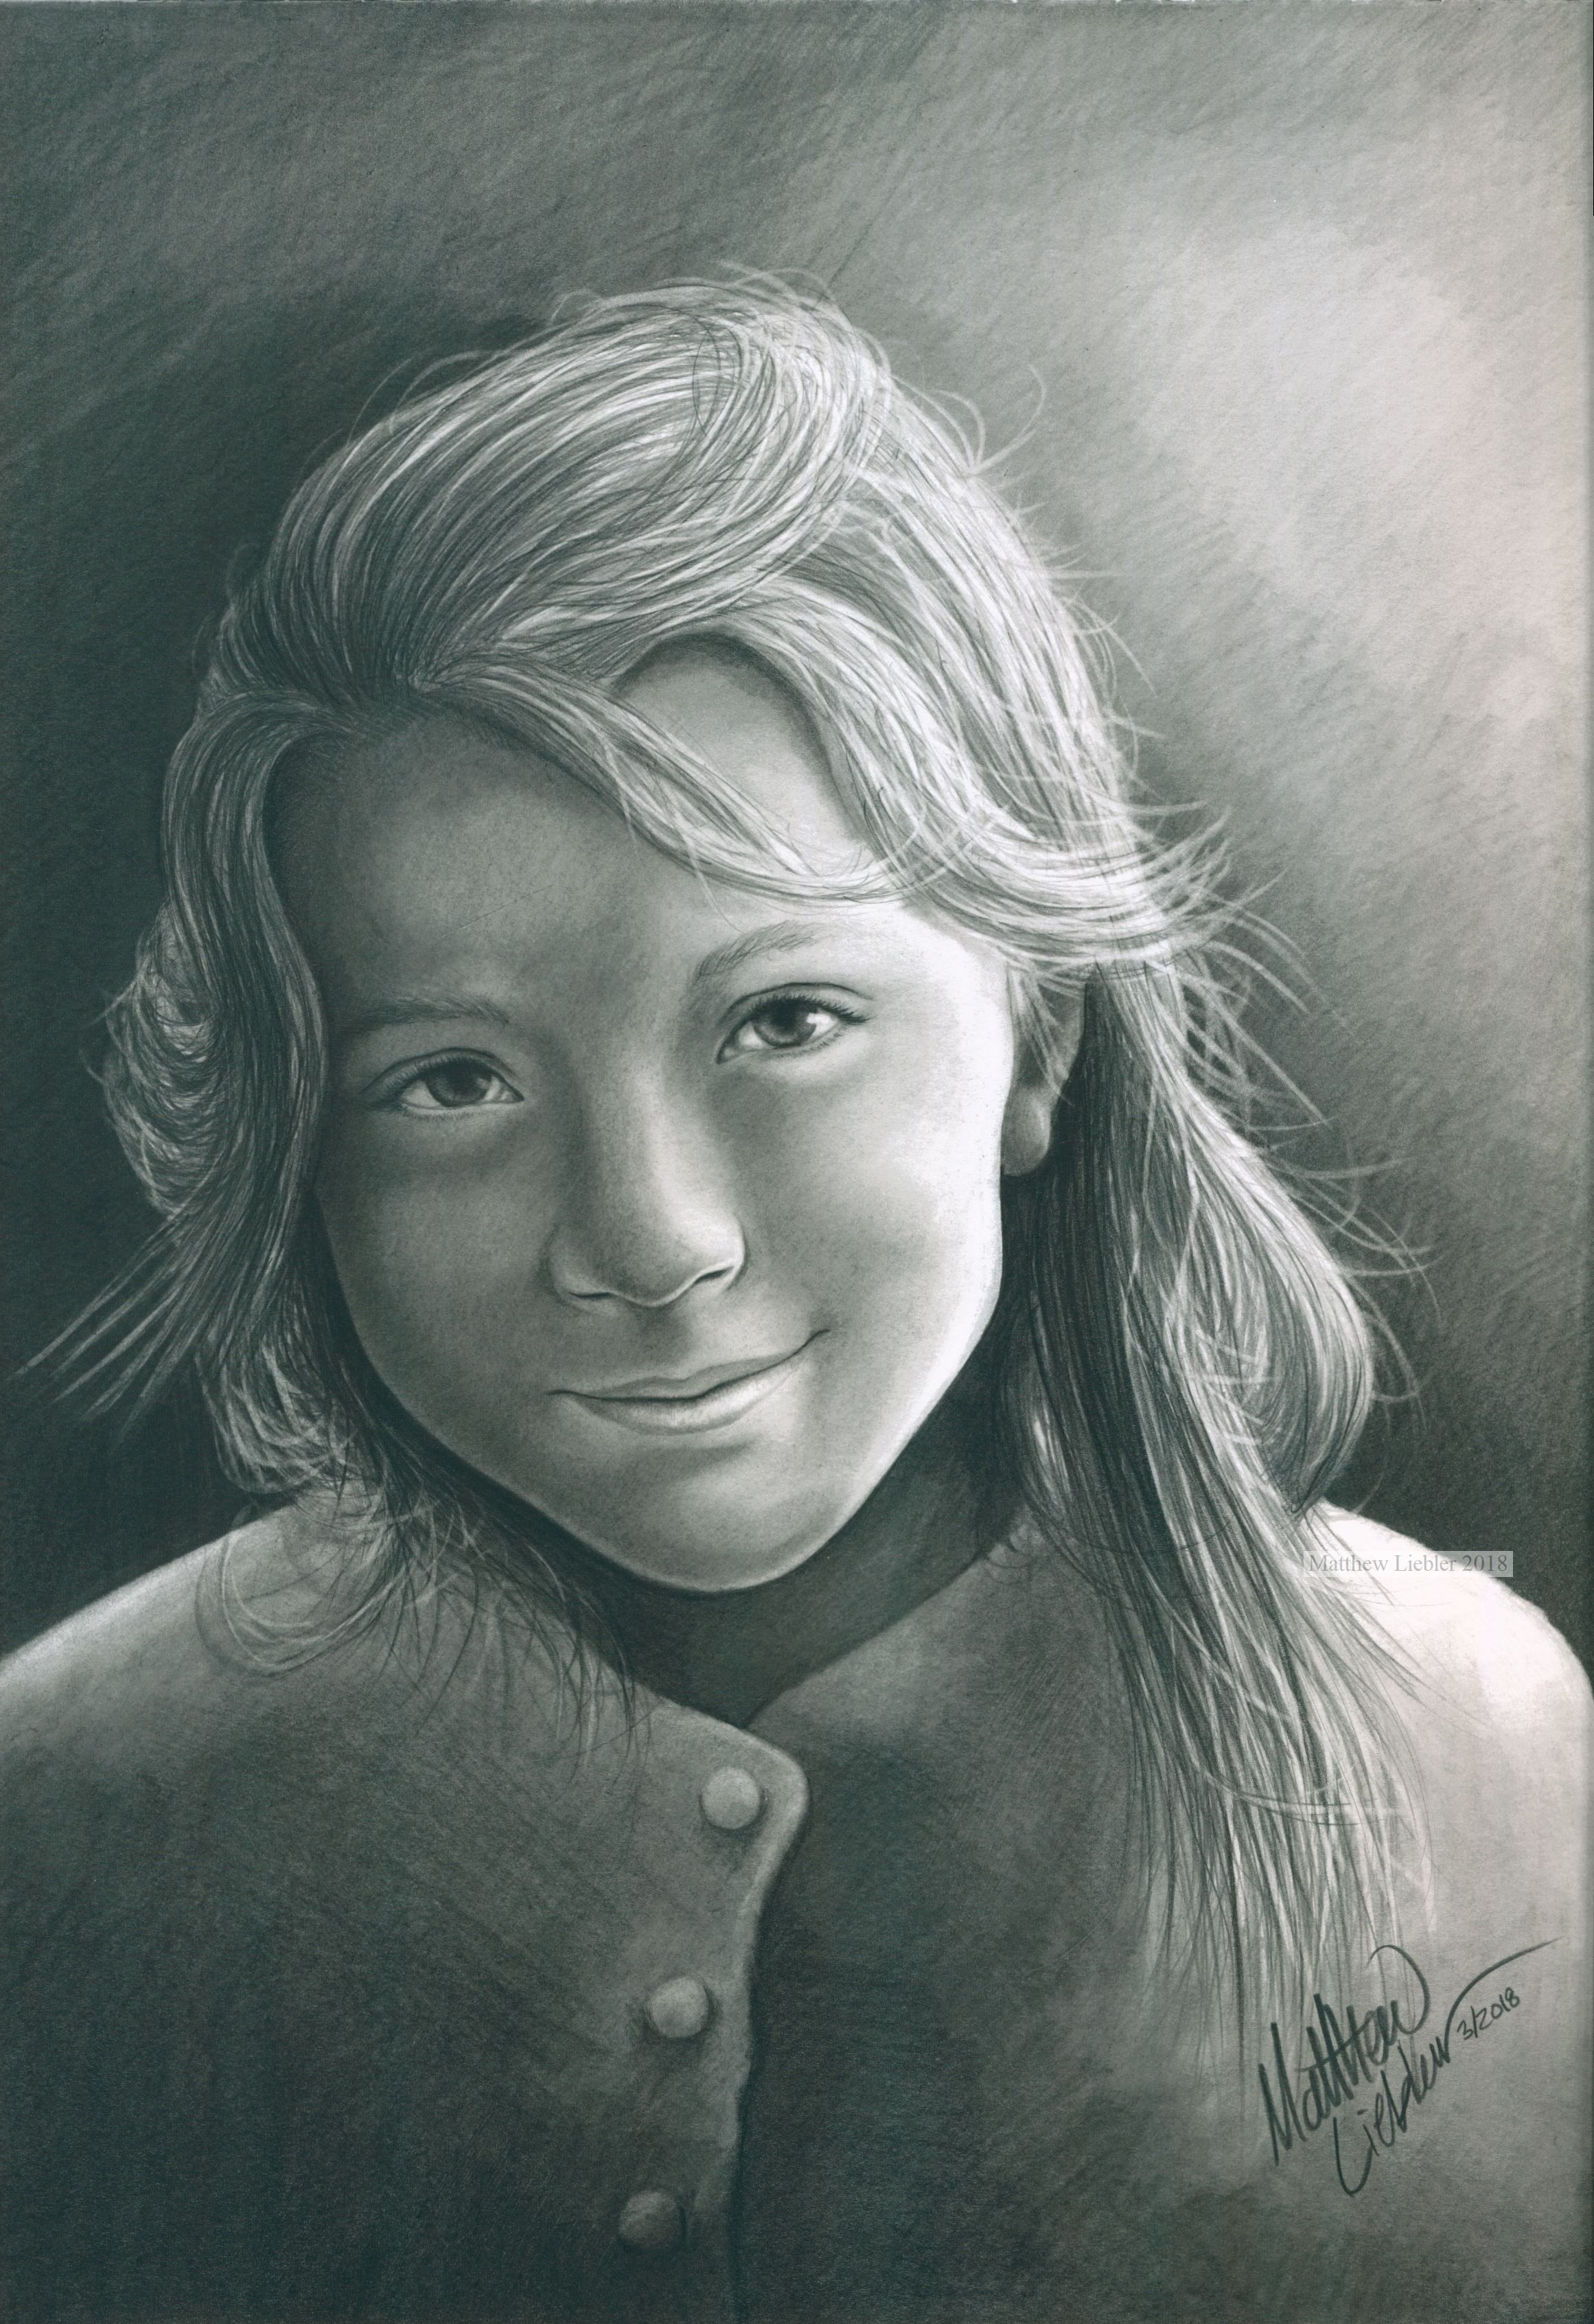 Drawing of a young child.